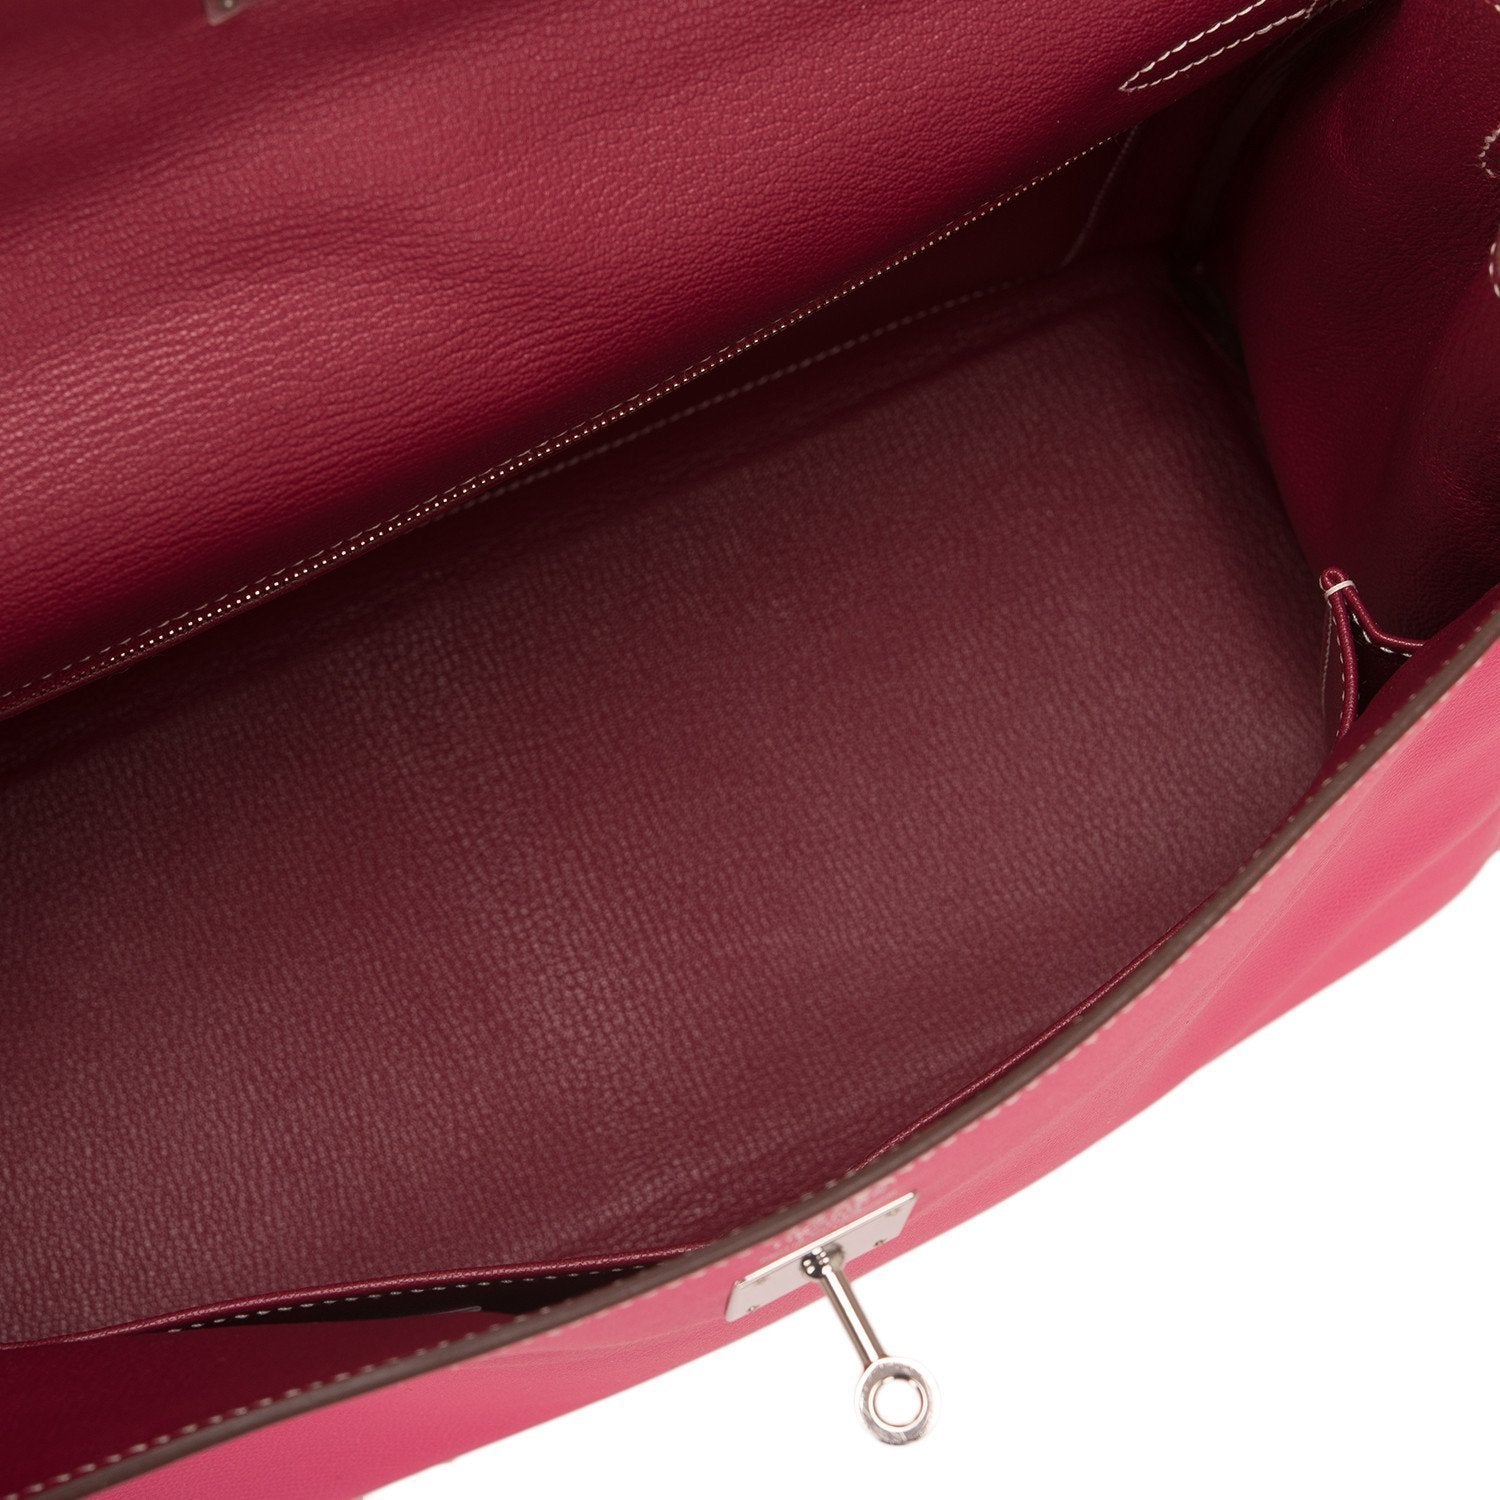 Hermes Bi Color Rose Tyrien Epsom Candy Kelly 35Cm Palladium Hardware Handbags